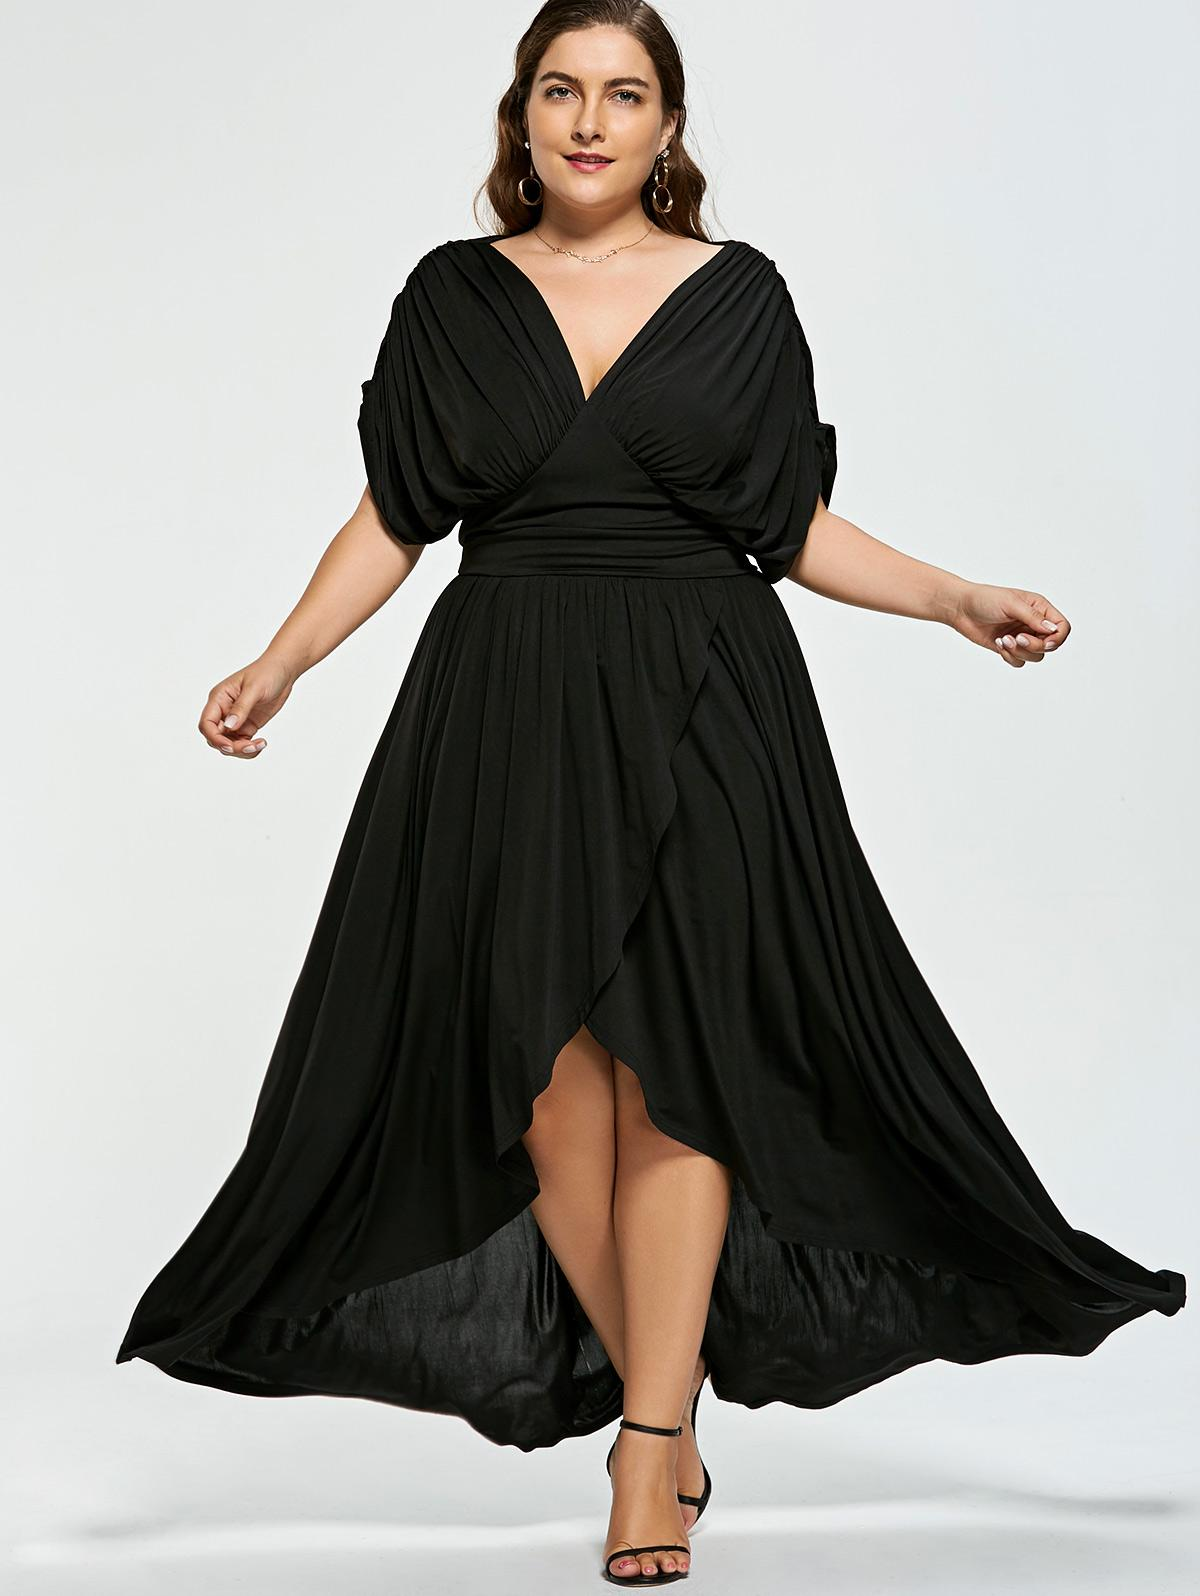 d5f6e0ca923d 2019 Gamiss Plus Size V Neck Women Summer Dress Short Sleeve Party Dress  Floor Length Empire Waist Maxi Formal Jersey From Silan